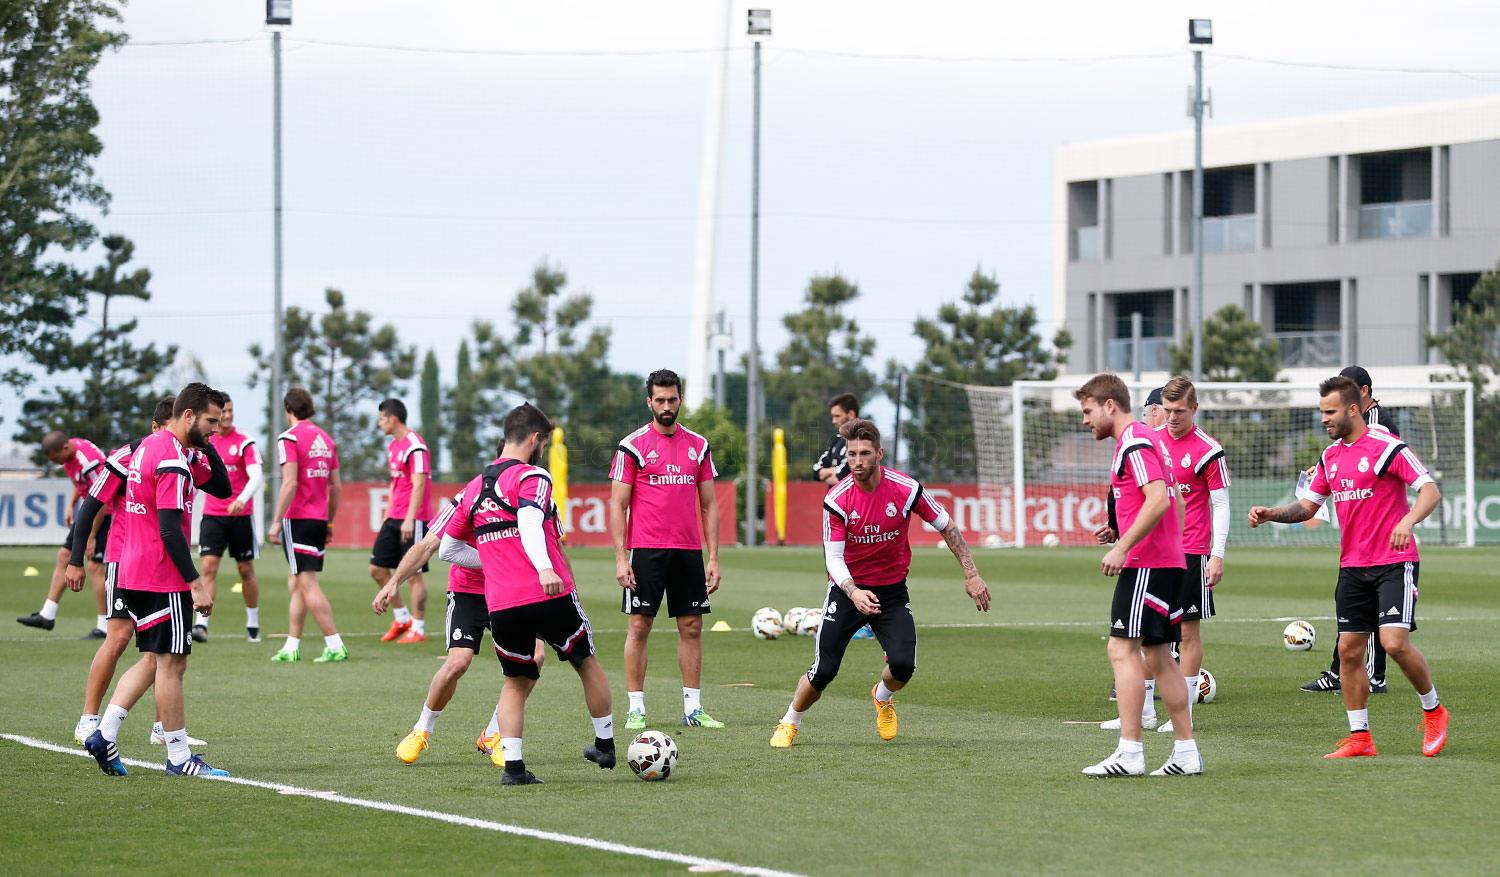 Real Madrid - Entrenamiento del Real Madrid - 01-05-2015